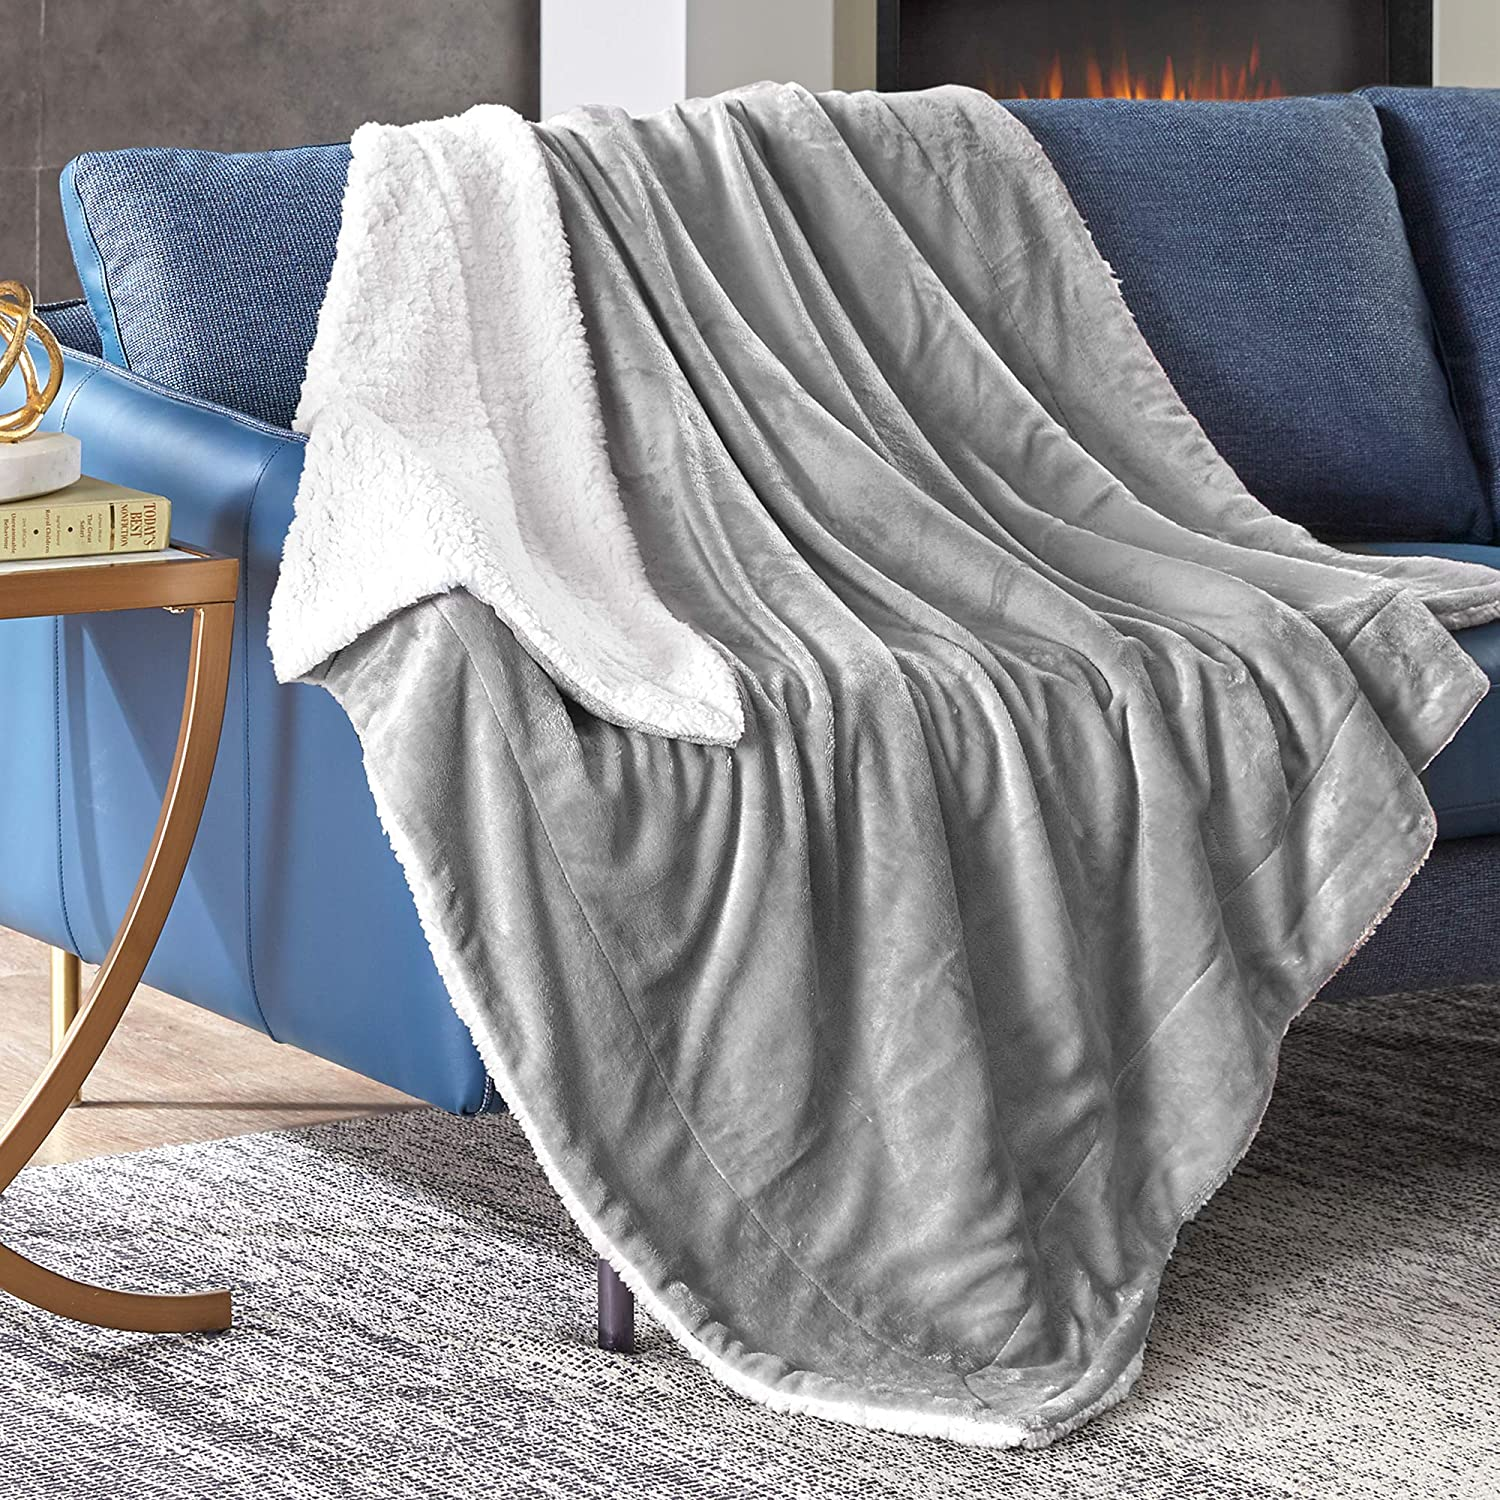 Hyde Lane Comfy Sherpa Throw Blankets for Couch and Bed | 2 Way Reversible - Sherpa Fleece & Plush Berber - Soft Throw Blanket Adults Size with Fuzzy Faux Fur (Grey, 50 x 60)